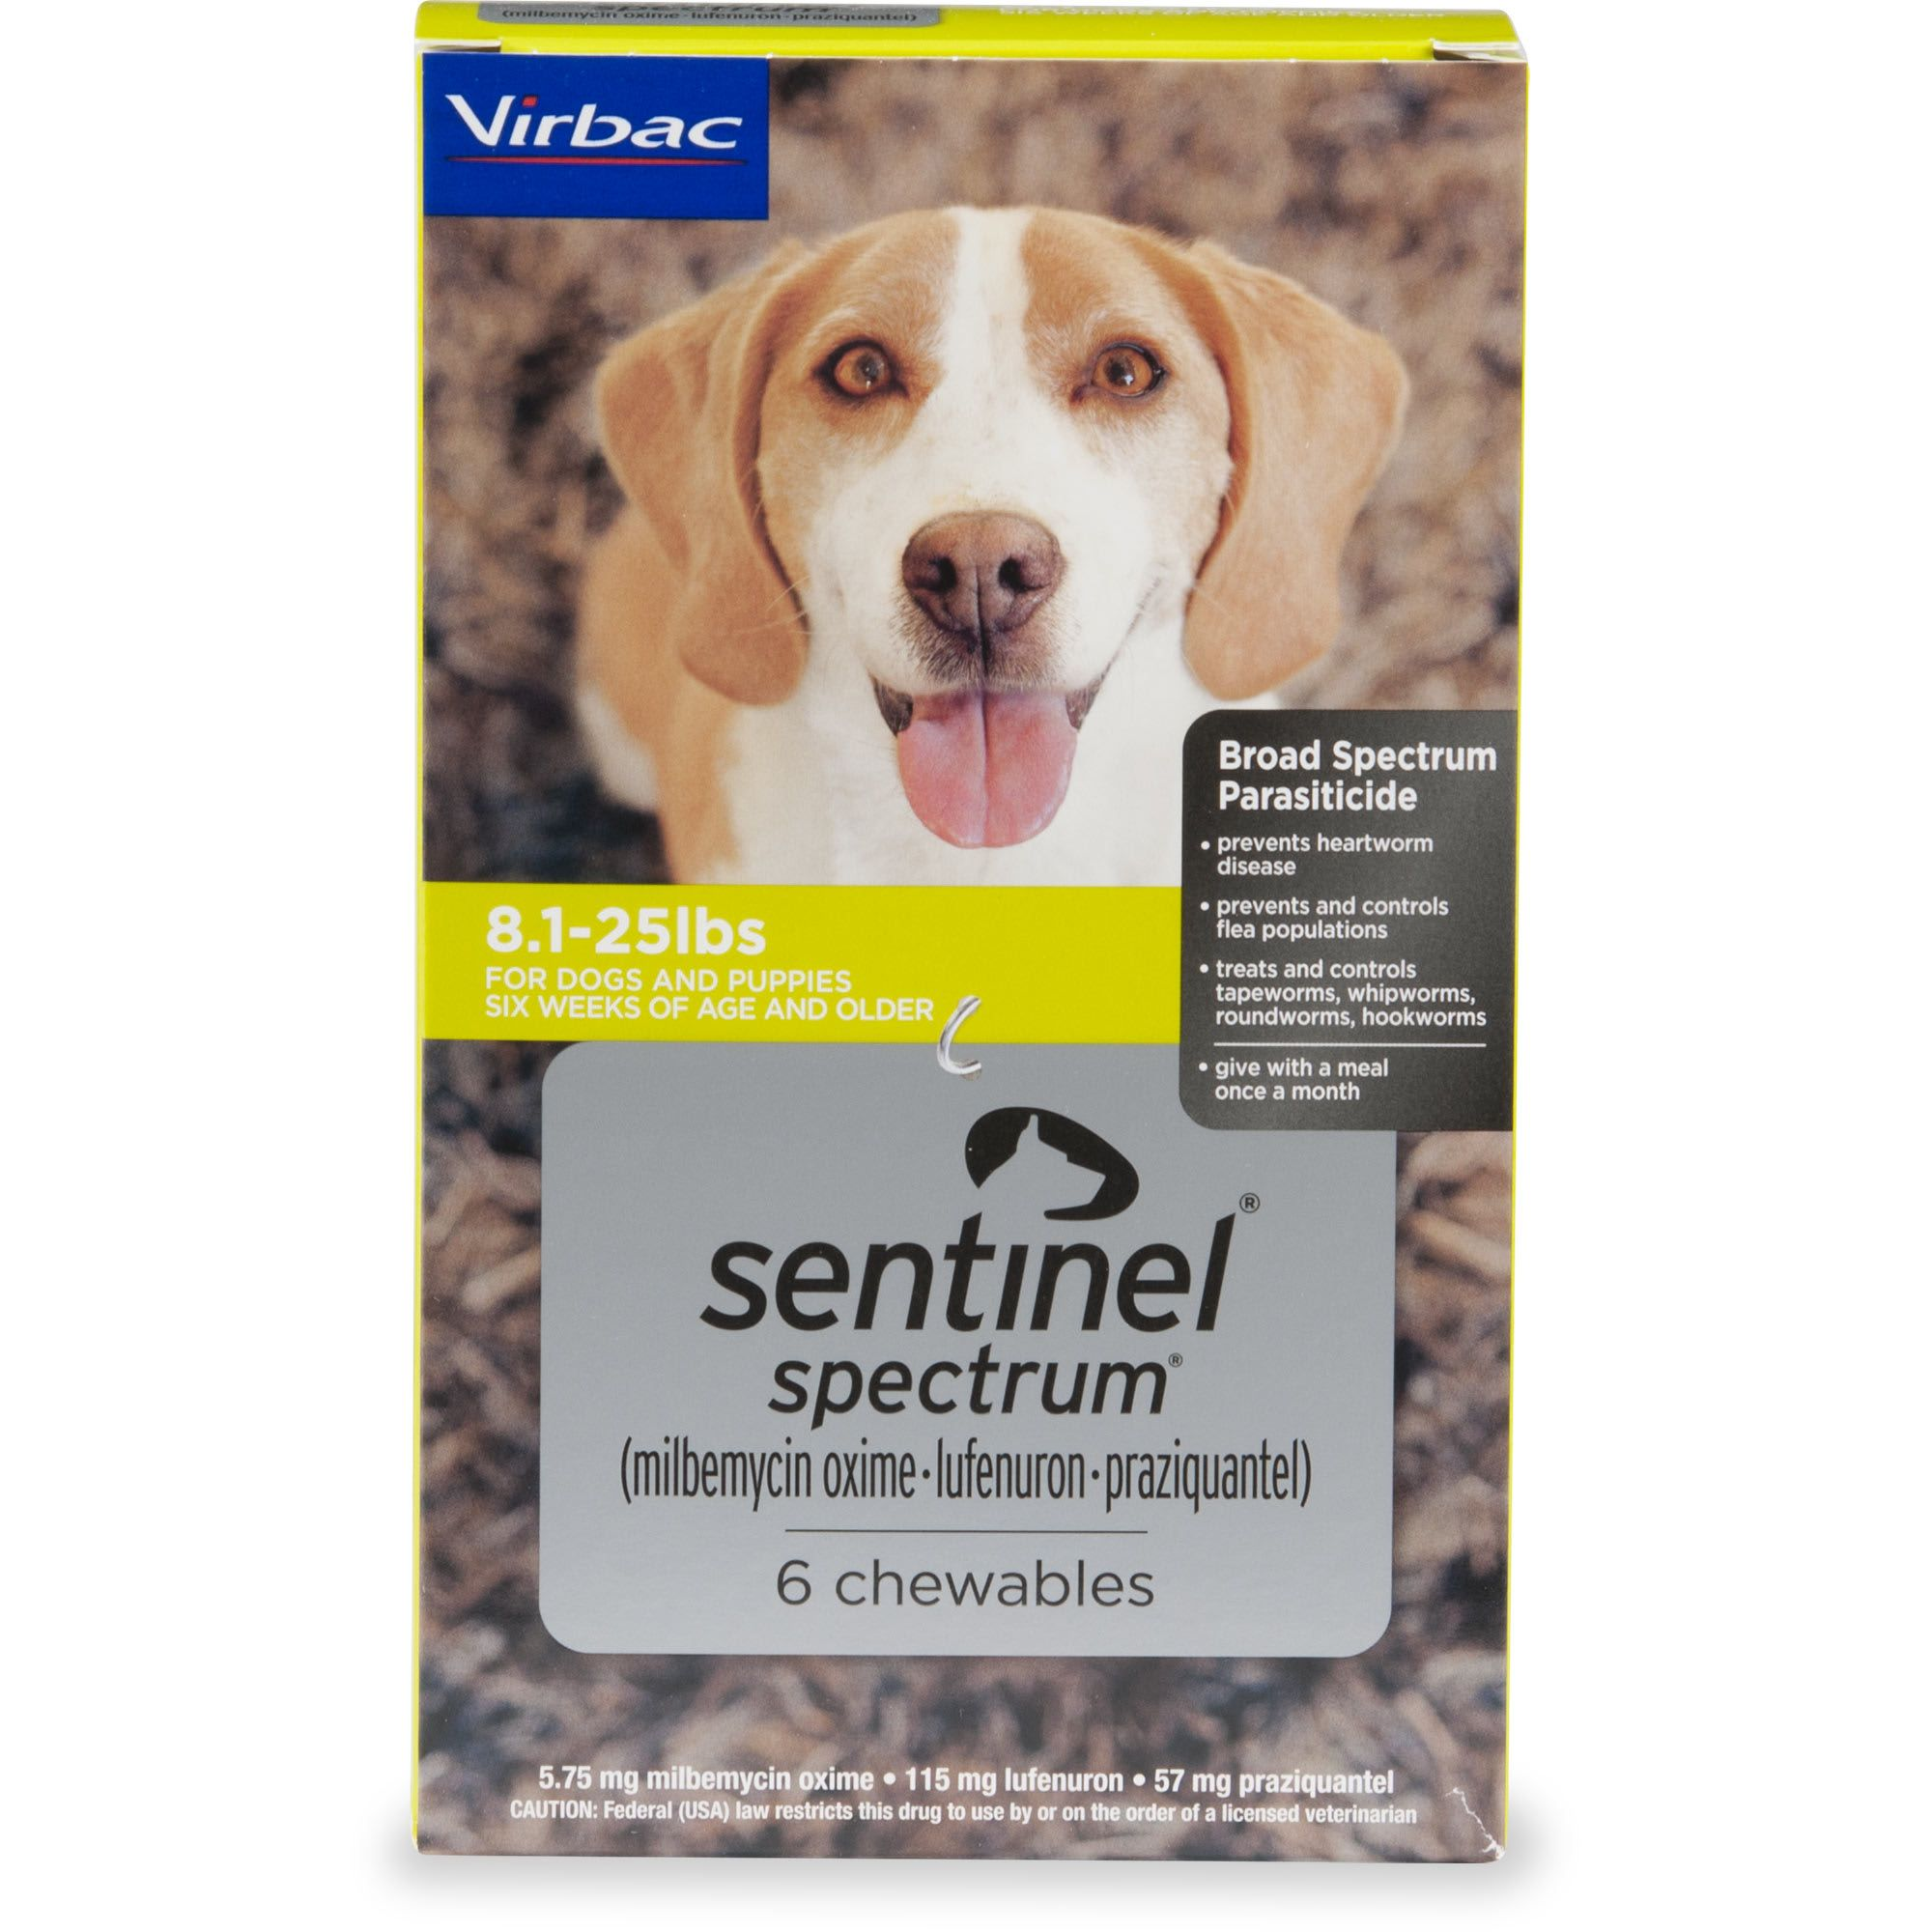 Sentinel Spectrum Chewables For Dogs 8 1 To 25 Lbs 6 Pack Petco In 2020 Heartworm Heartworm Medication Petco